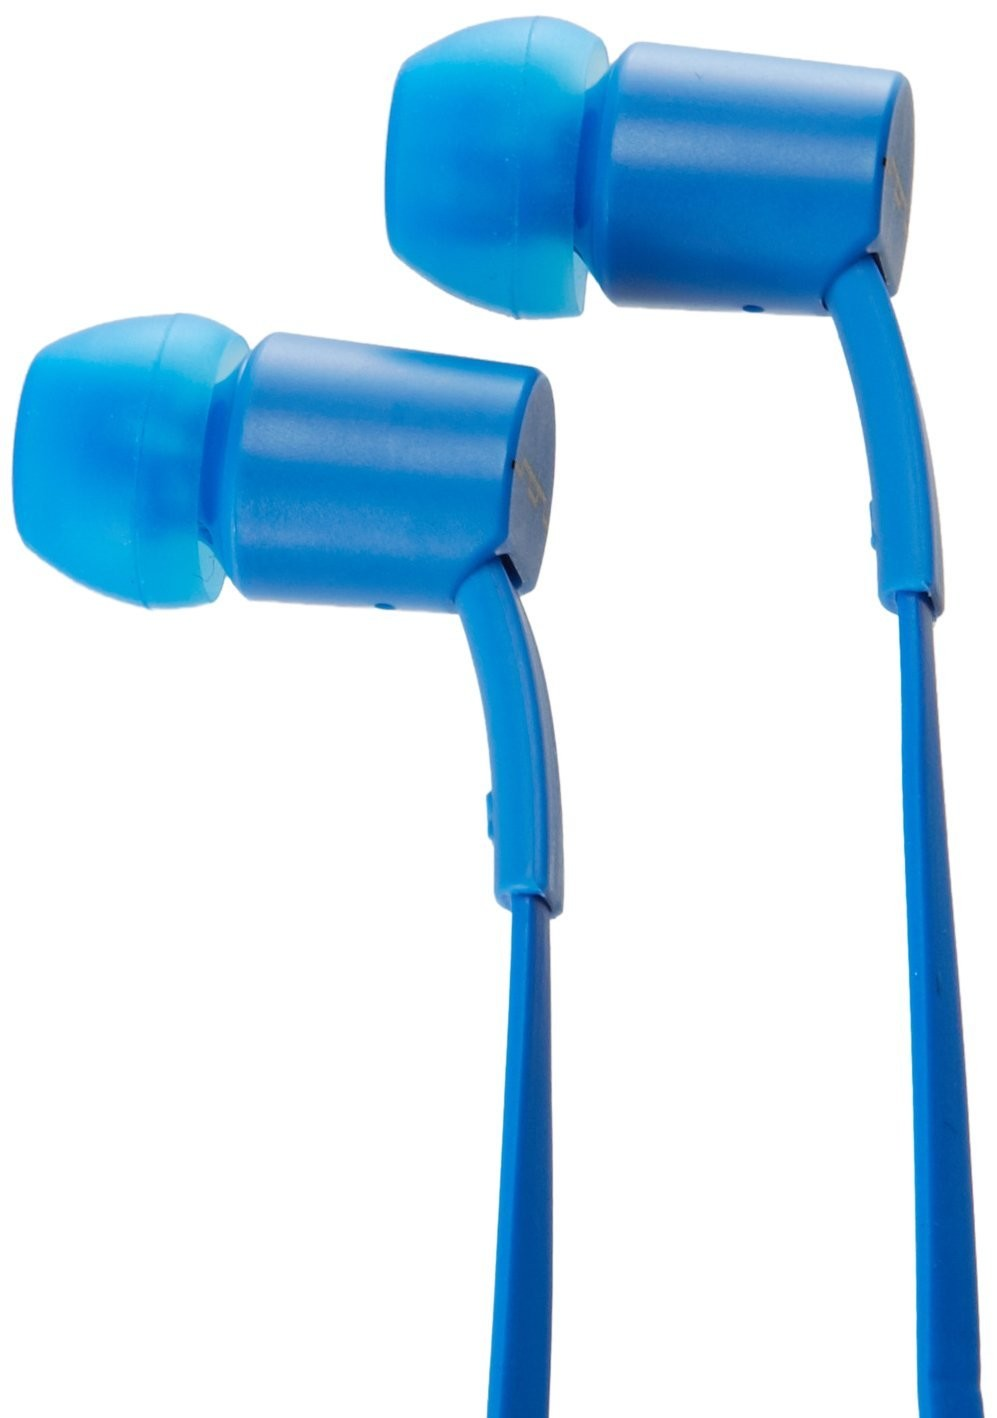 SOL REPUBLIC JAX In-Ear Headphones with 1-Button Mic and Music Control - Electric Blue